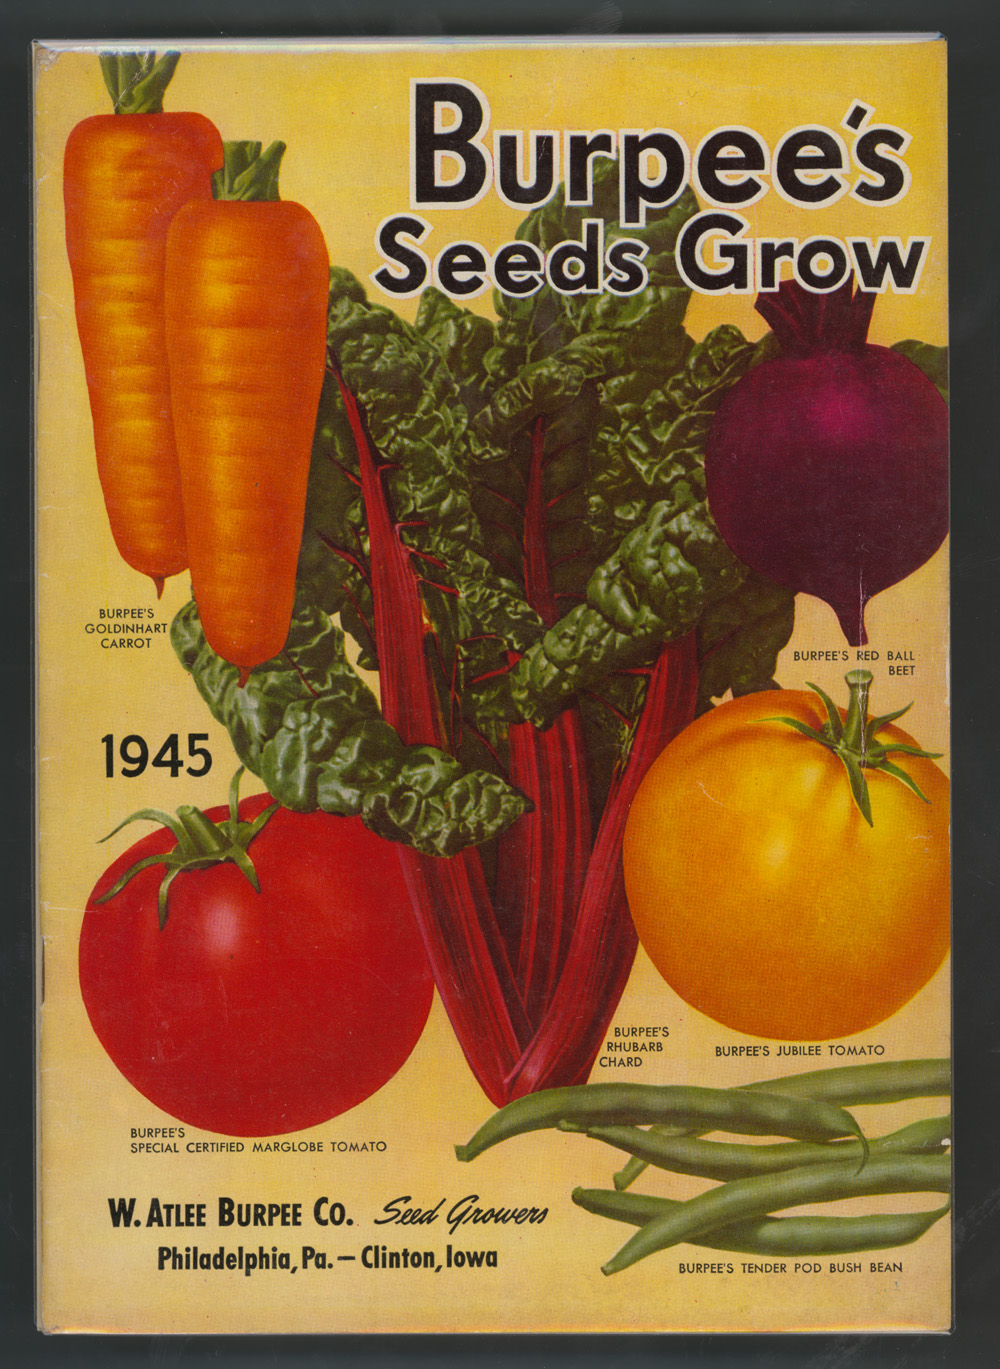 Find great deals on eBay for burpee seeds. Shop with confidence.